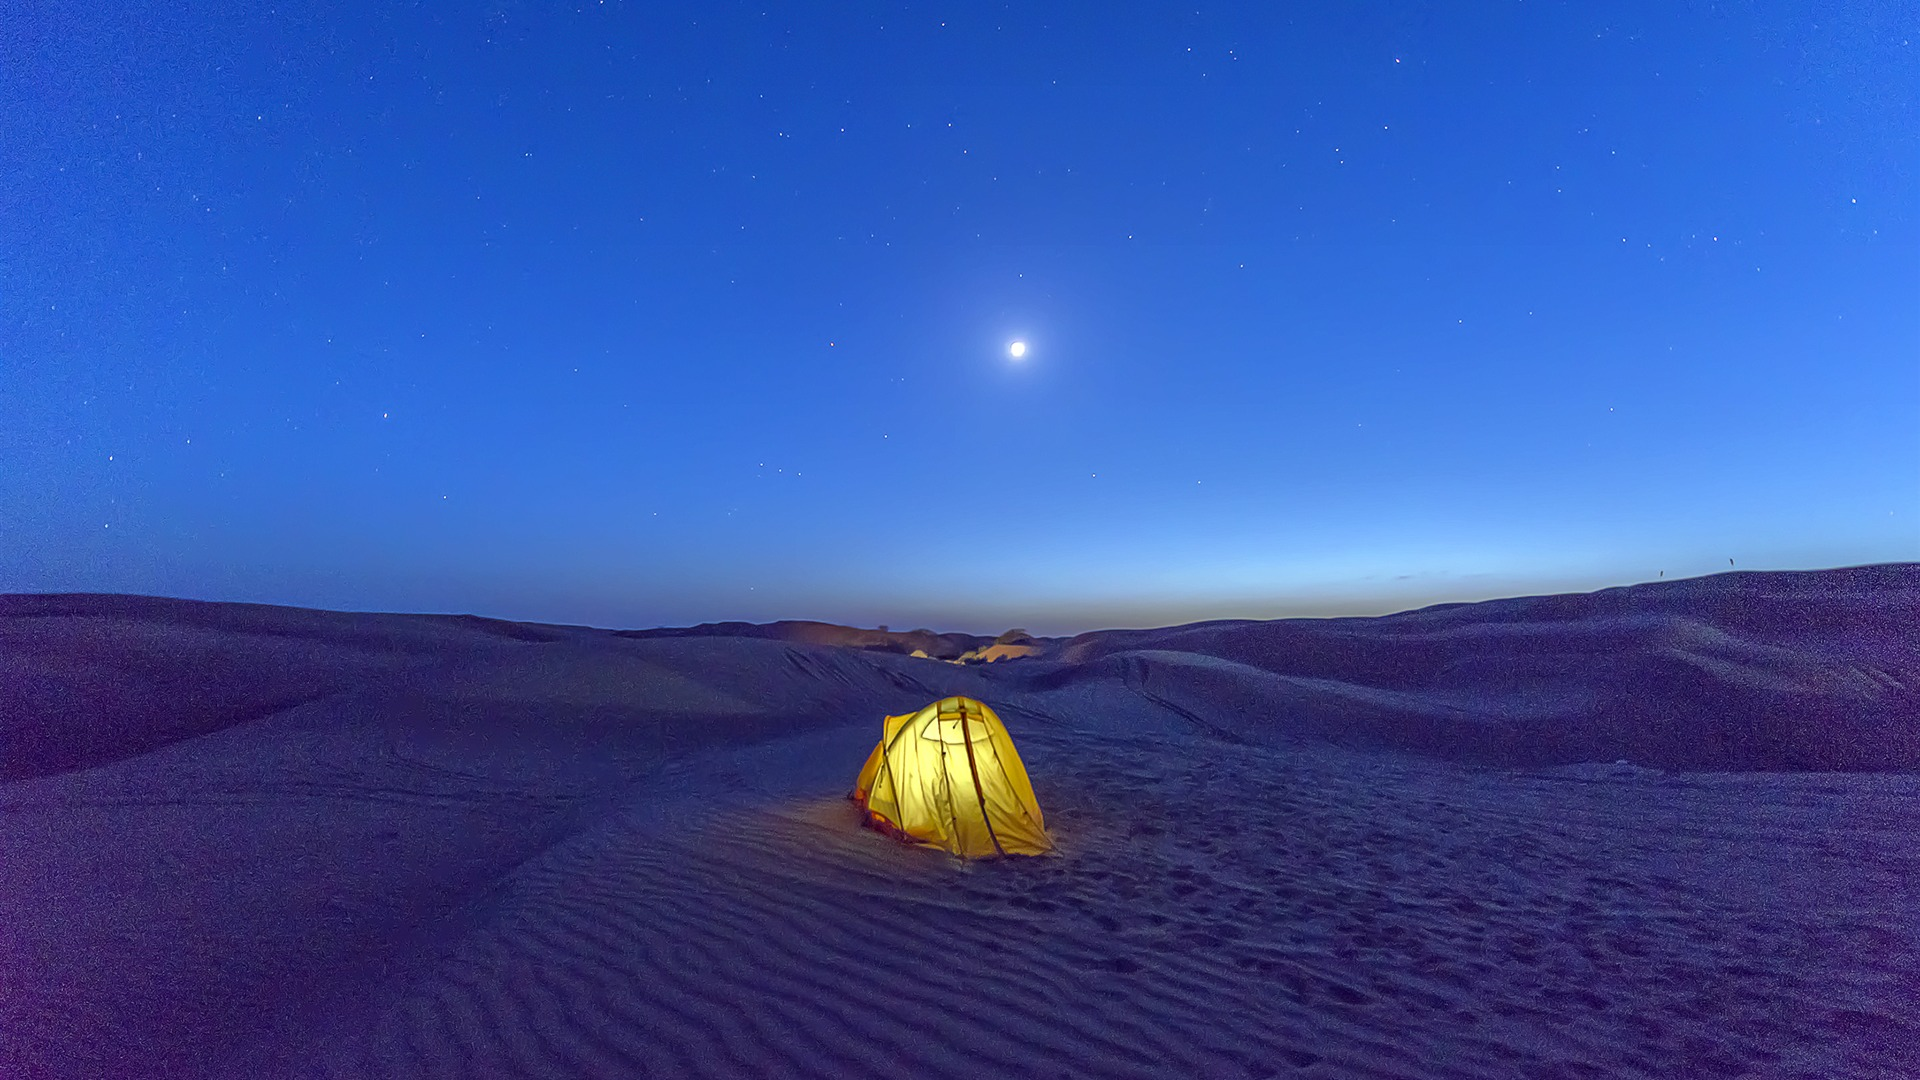 Outdoor tourism desert night starry camping Wallpaper 1920x1080